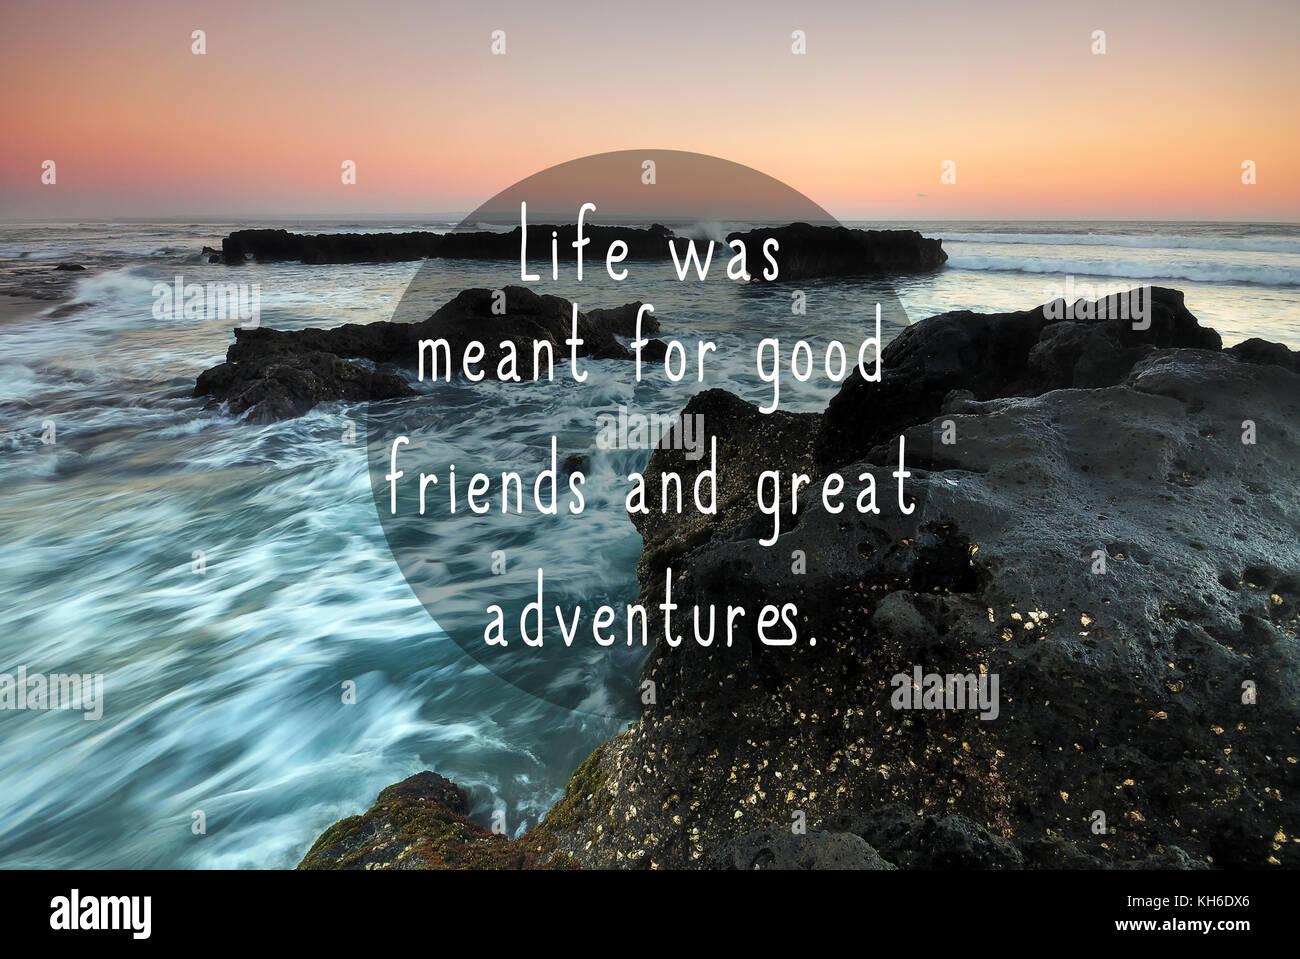 Great Inspirational Quotes About Life Travel Inspirational Quotes  Life Was Meant For Good Friends And